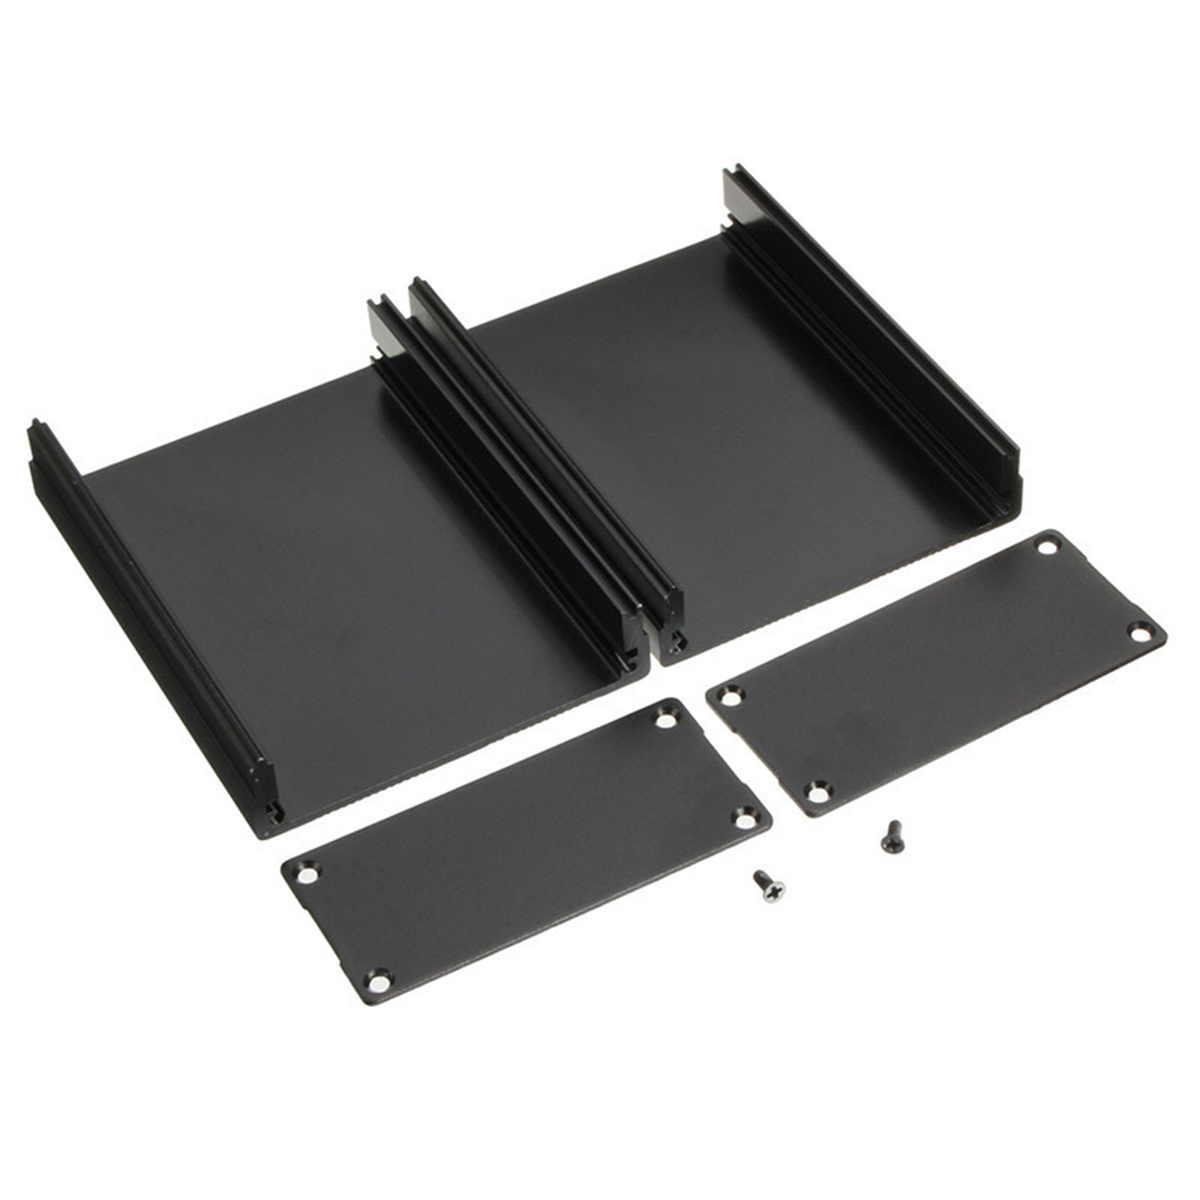 Mayitr Aluminum PCB Instrument Box Black Electronic Project Enclosure Case 100x76x35mm 1pc black aluminum enclosure case mayitr pcb instrument electronic project box 100x76x35mm